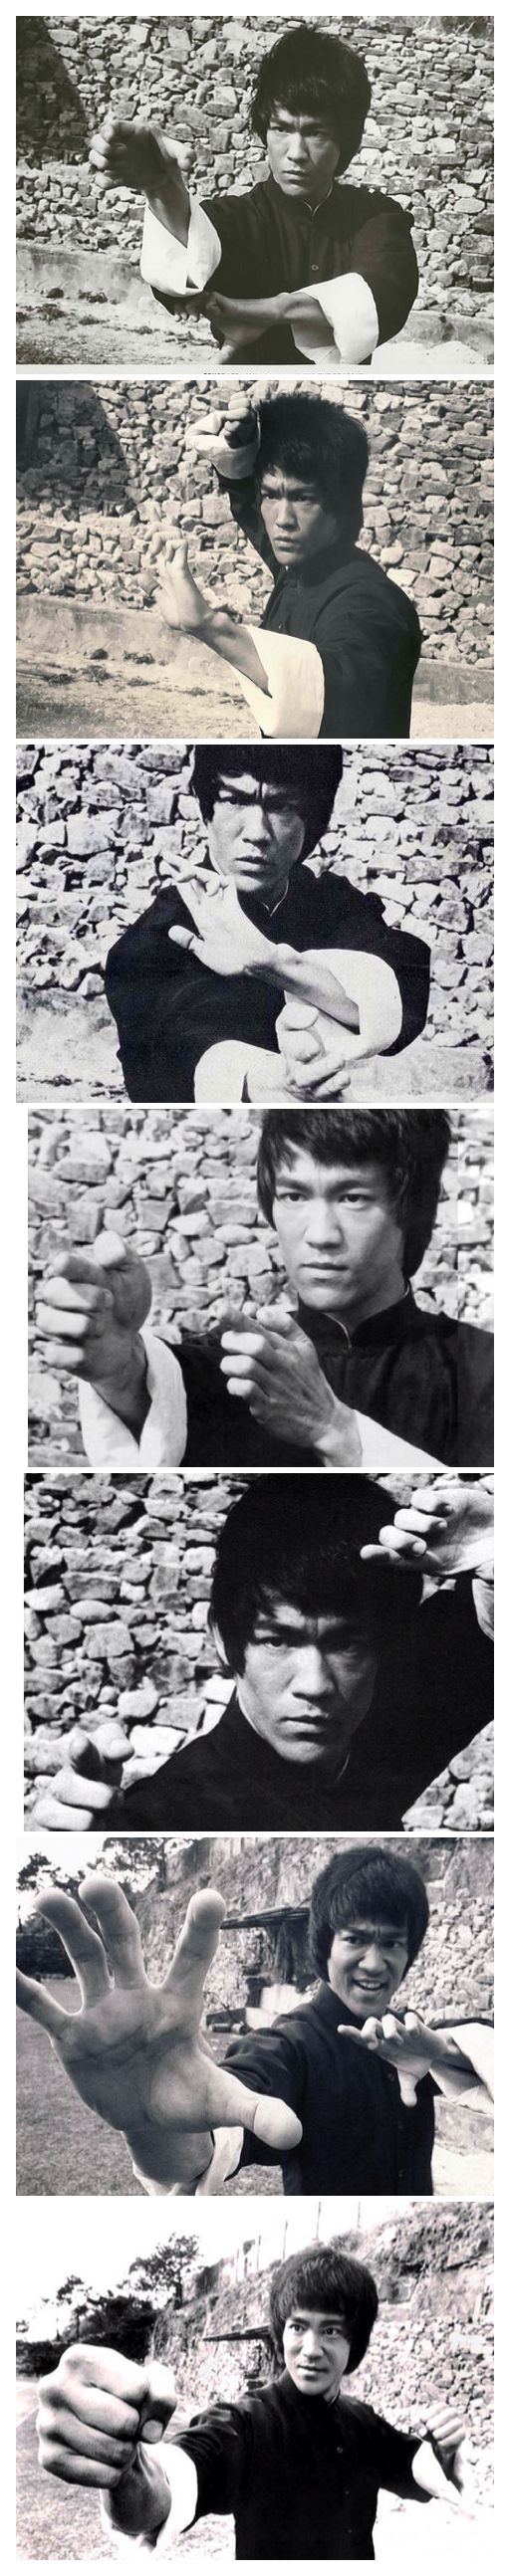 Bruce Lee behind Promo Picture Shots for Enter The Dragon.